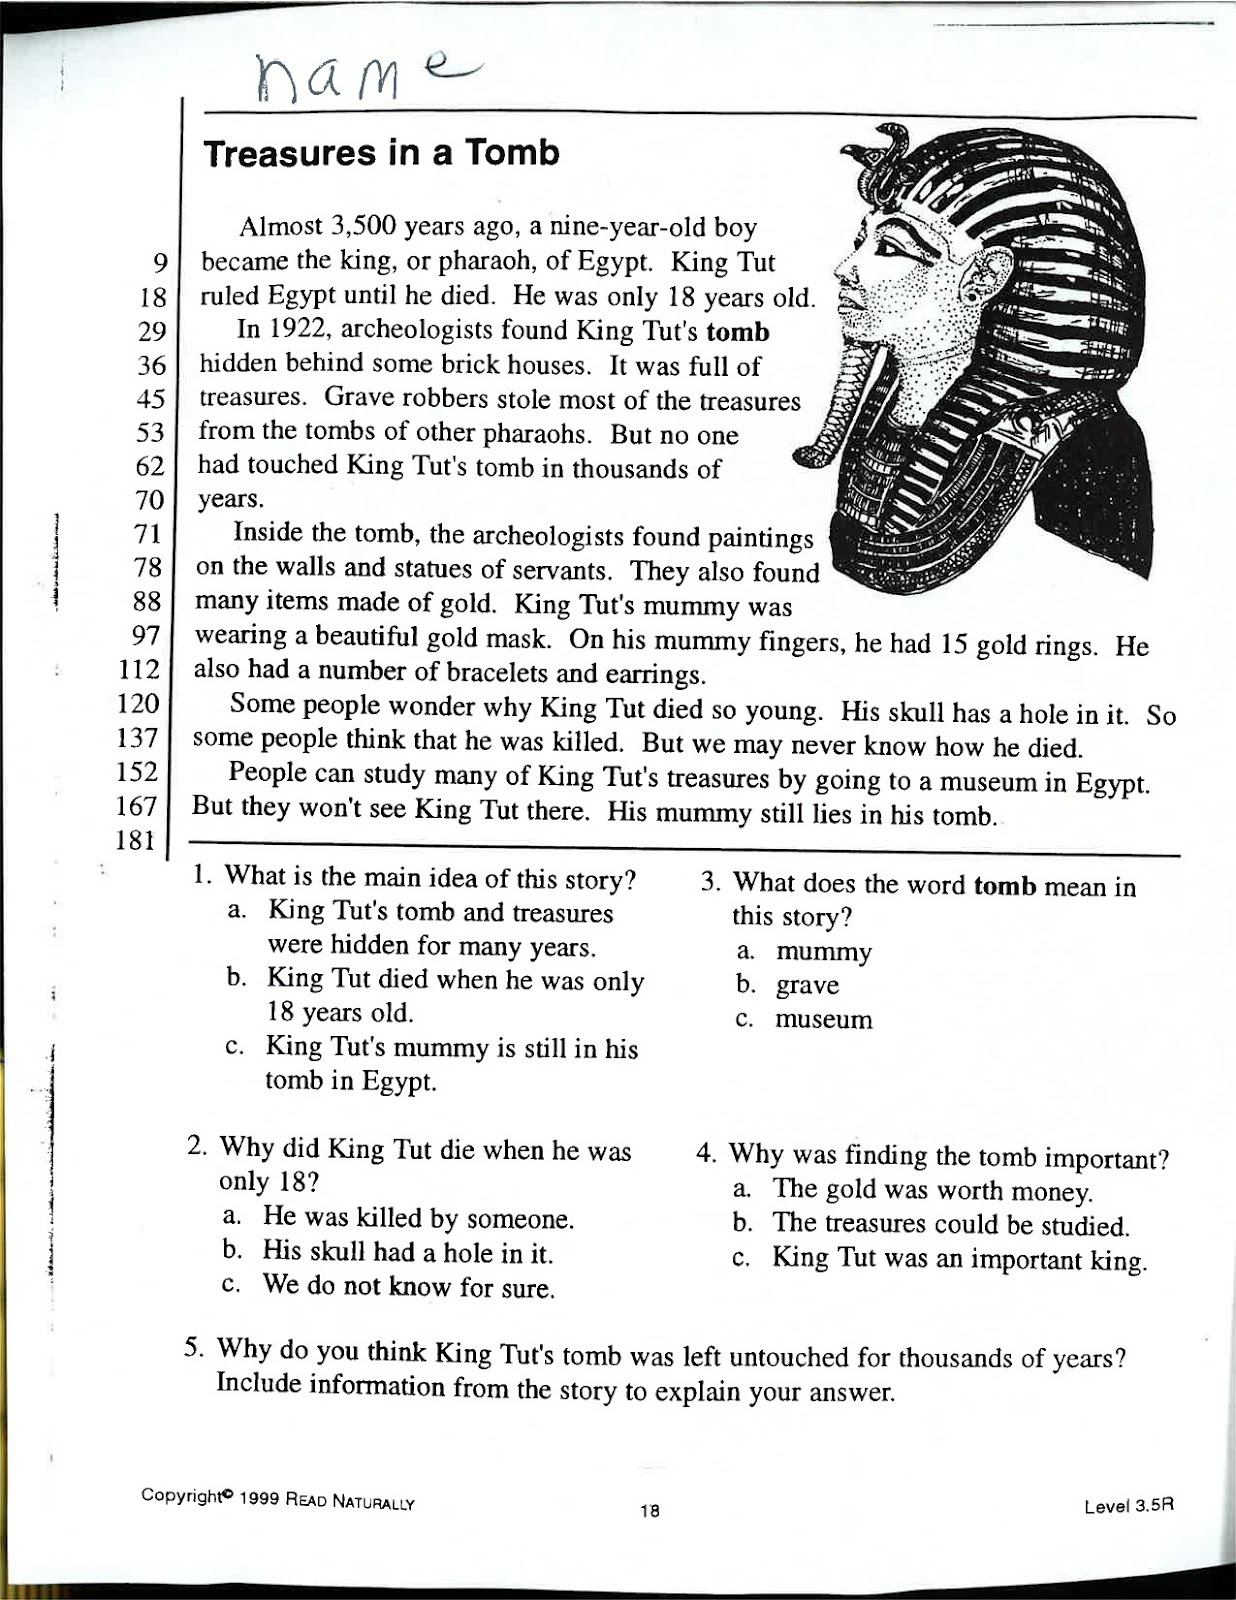 Homework help king tut